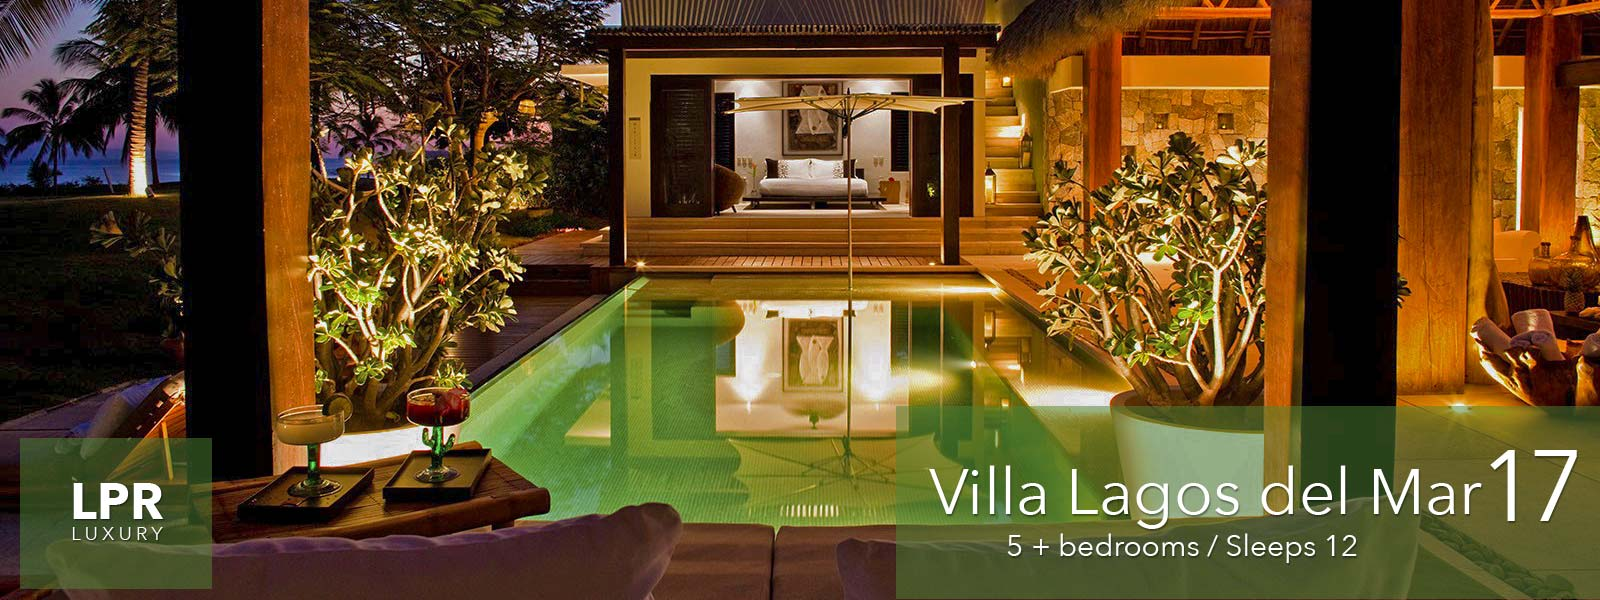 lpr luxury - the agency for high end punta mita real estate & rentals